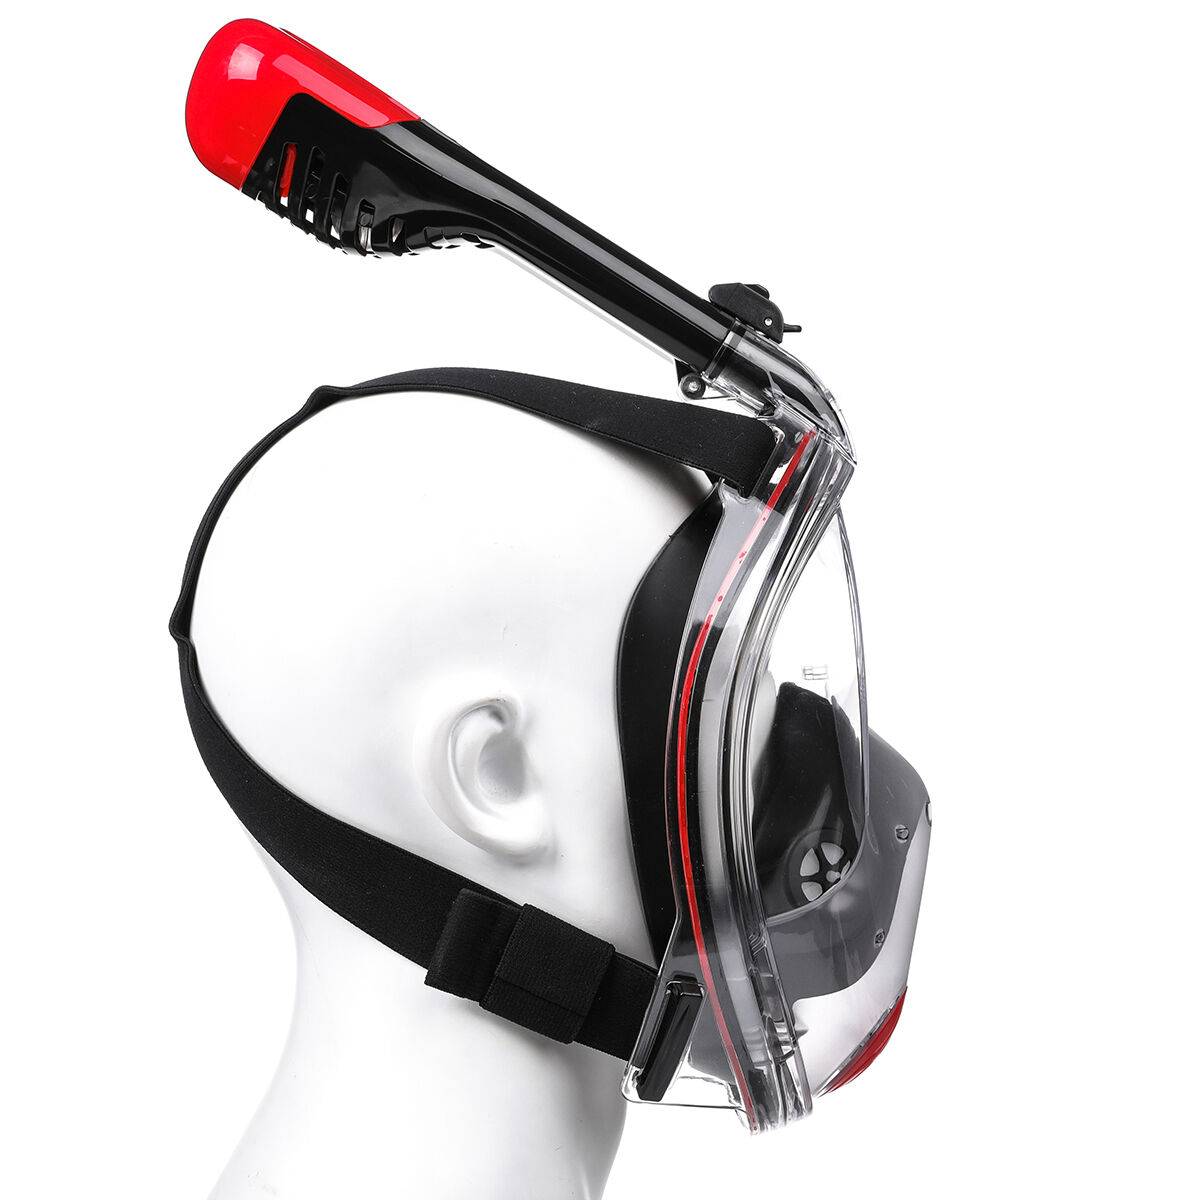 CAMTOA Foldable 180° Full Face Snorkeling Mask Anti fog Diving Respirator Mask with Detachable Camera Stand Net Bag - 5